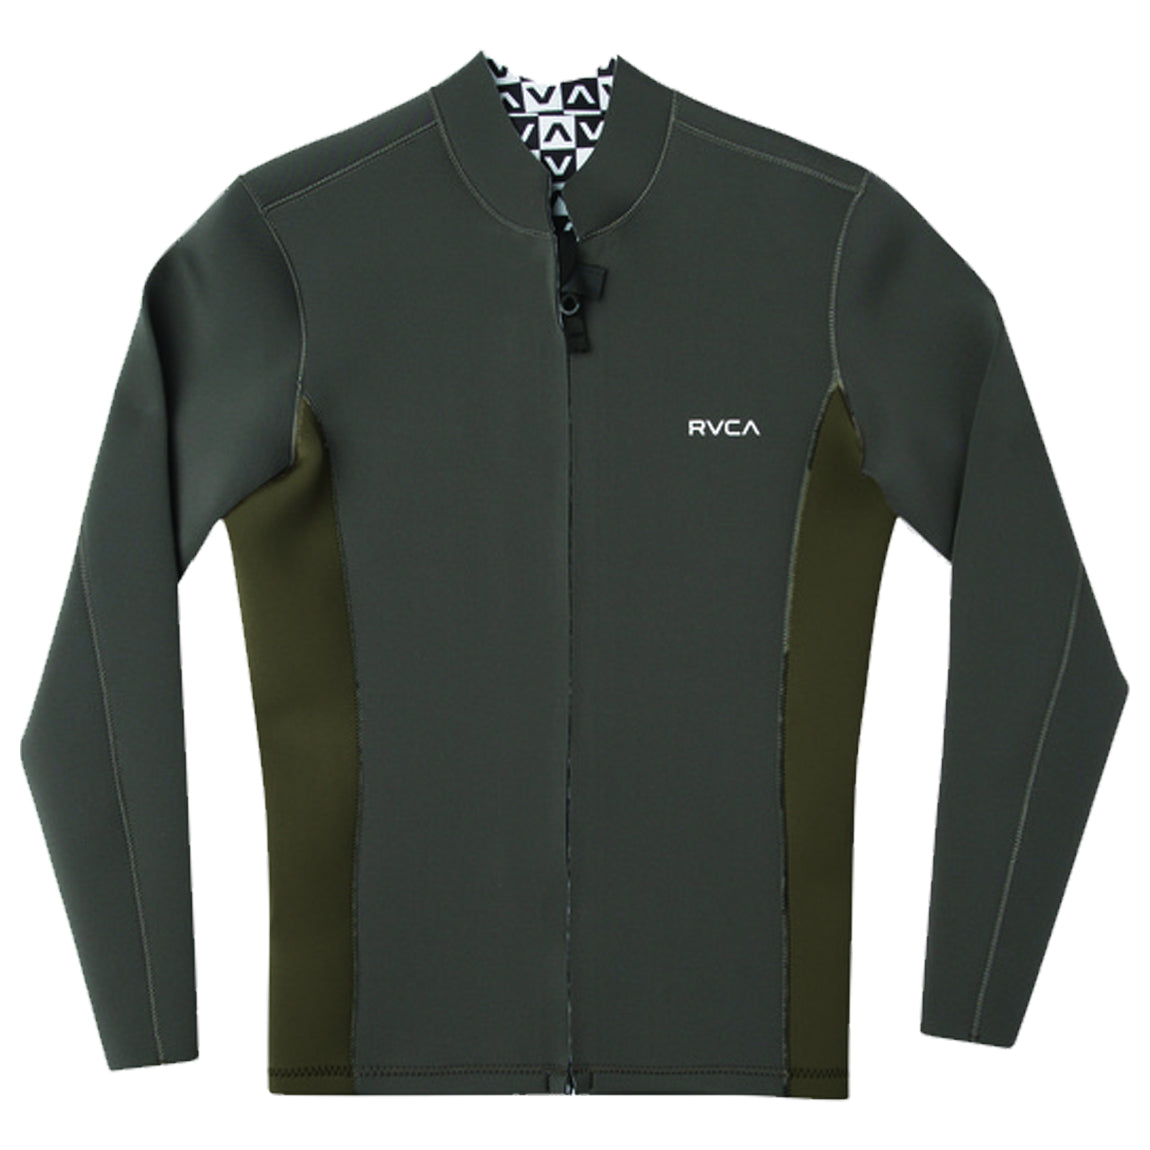 ANCELL 2MM FRONT ZIP JACKET PIRATE BLACK